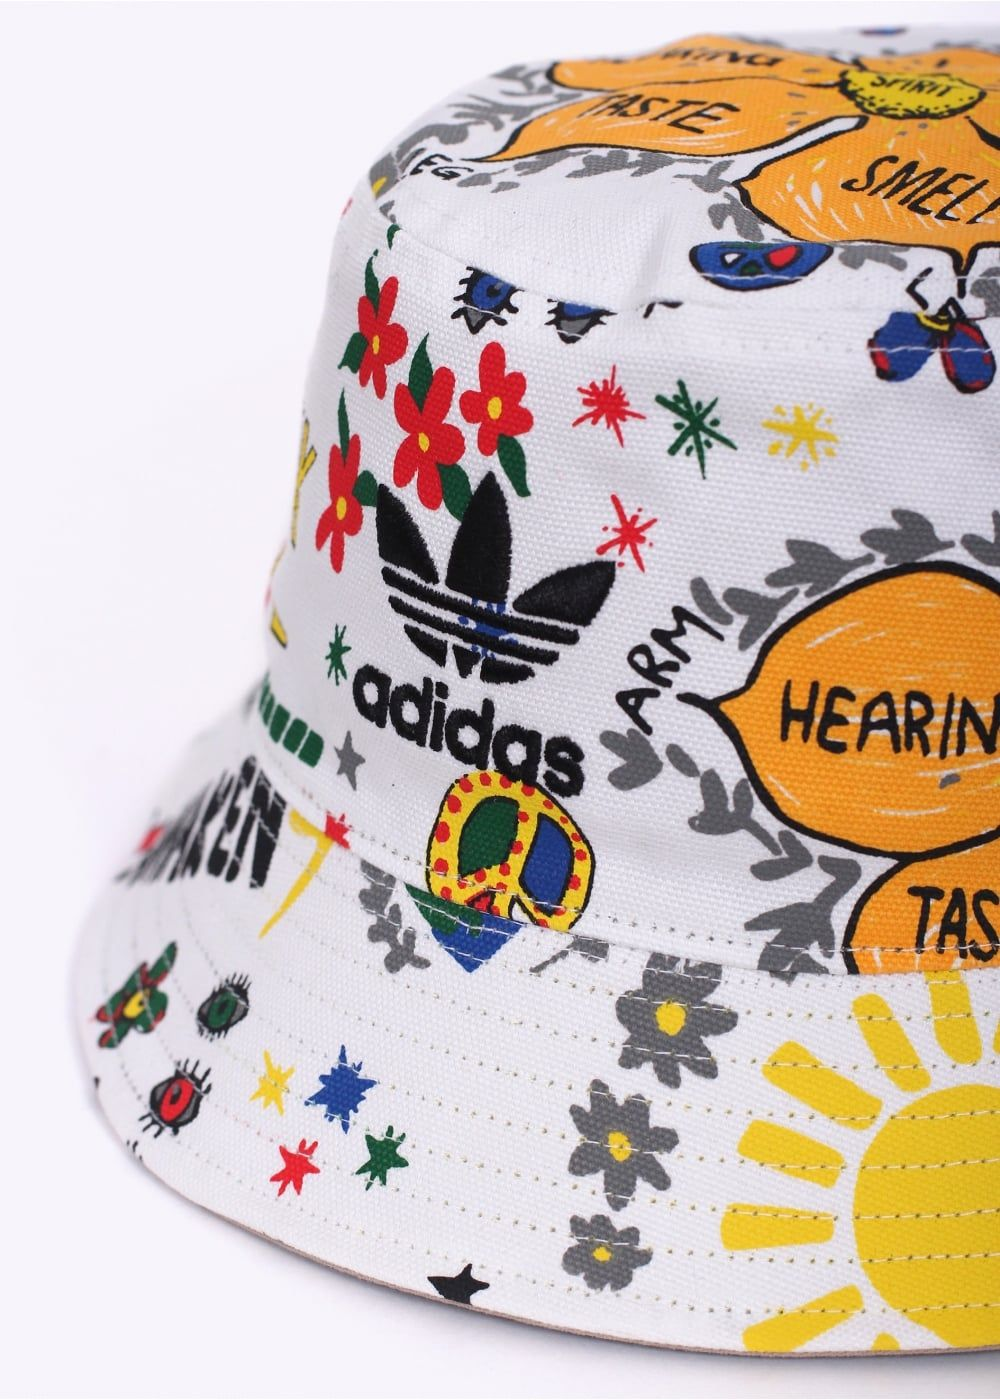 1cf8ea4ad42f8 Adidas Originals x Pharrell Williams Artist Reversible Bucket Hat - White -  £22 - Triads.co.uk